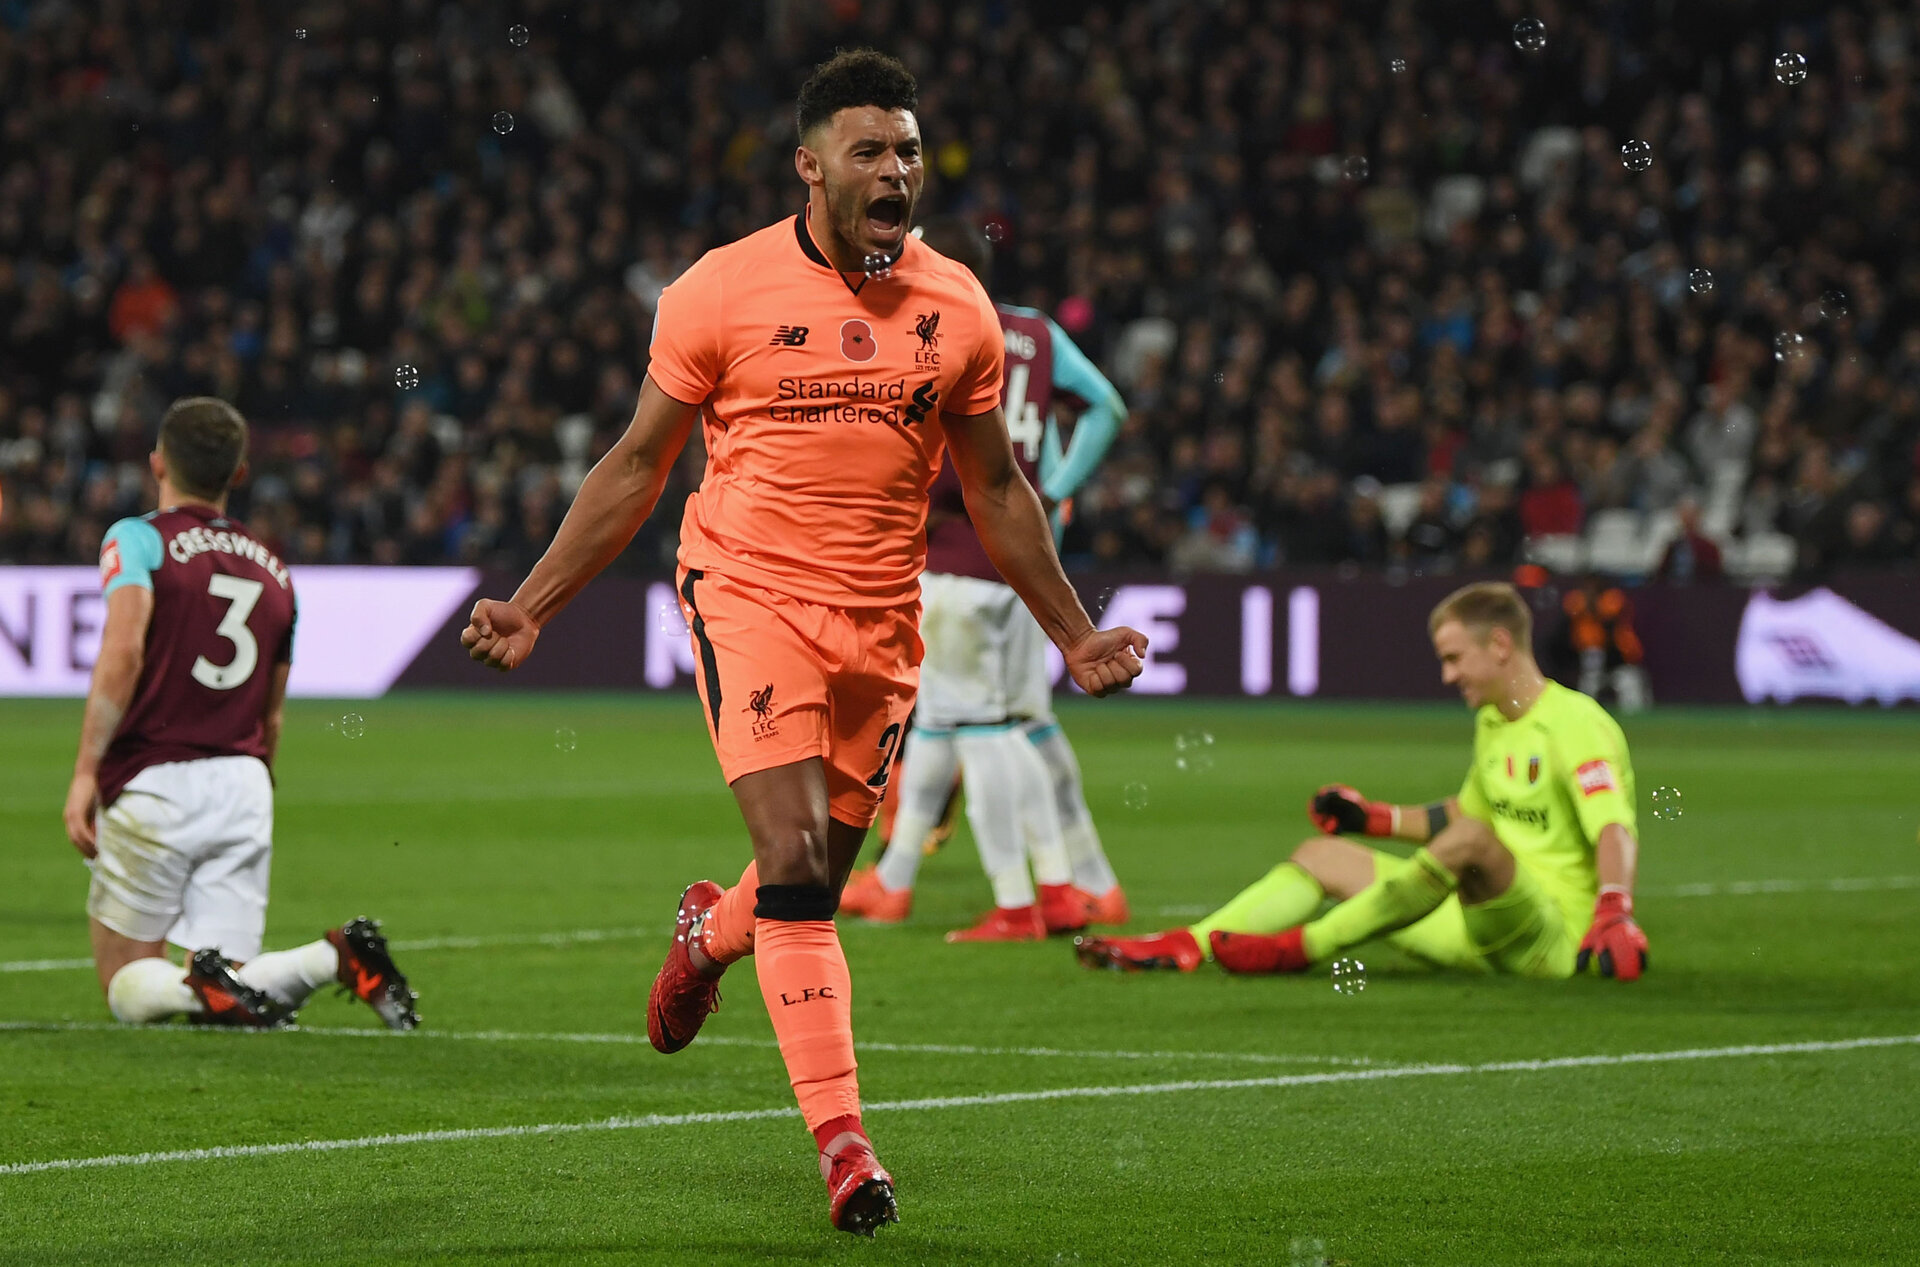 LONDON, ENGLAND - NOVEMBER 04:  Alex Oxlade-Chamberlain of Liverpool celebrates scoring his sides third goal during the Premier League match between West Ham United and Liverpool at London Stadium on November 4, 2017 in London, England.  (Photo by Shaun Botterill/Getty Images)